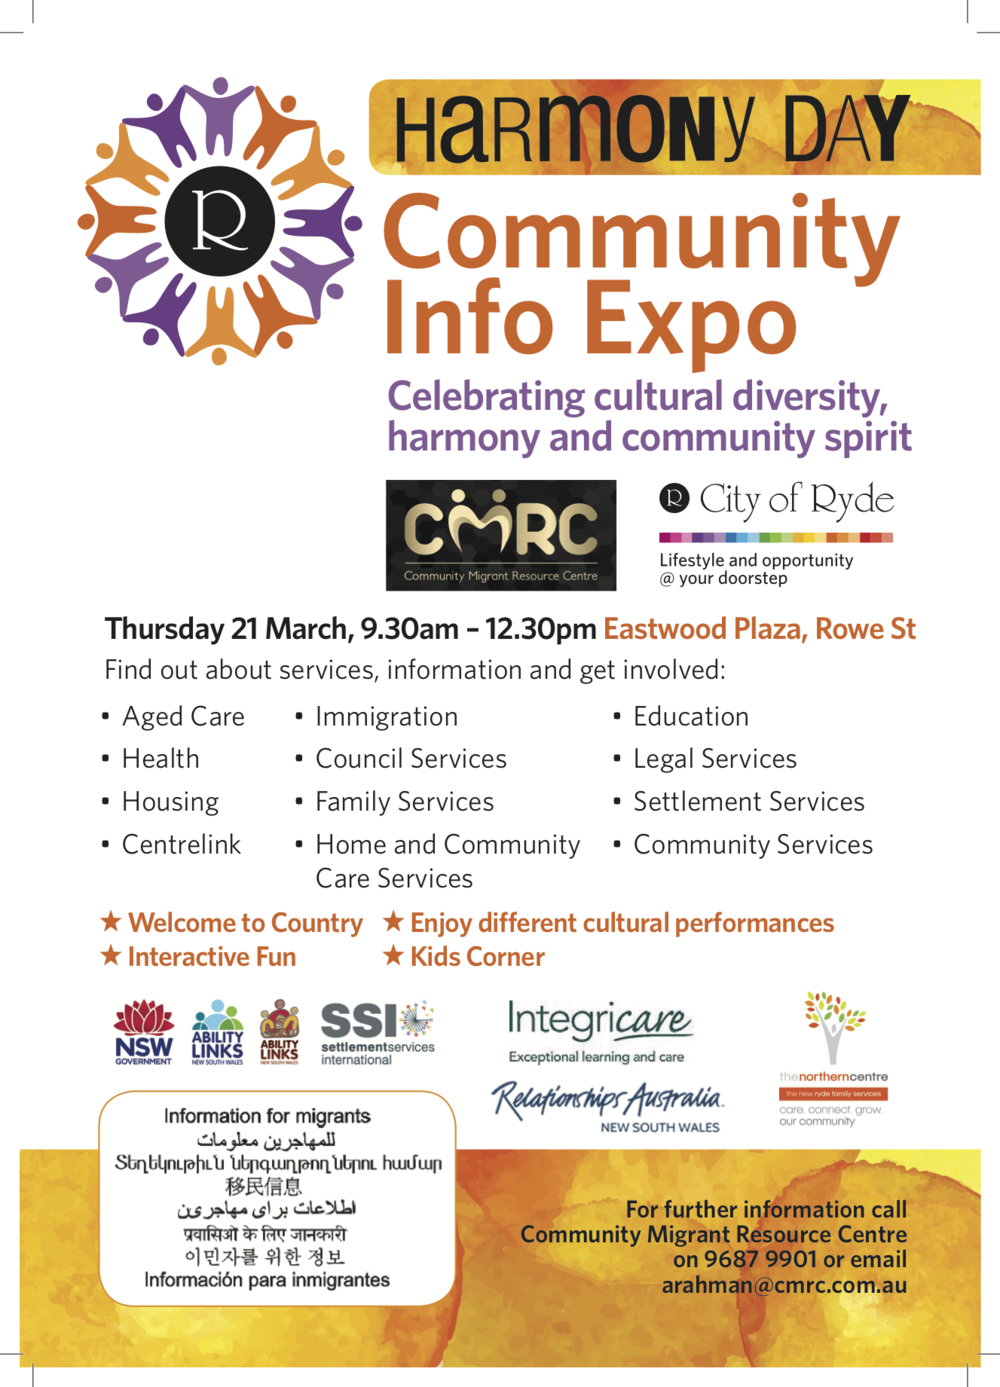 Community Info Expo 2019 flyer.png